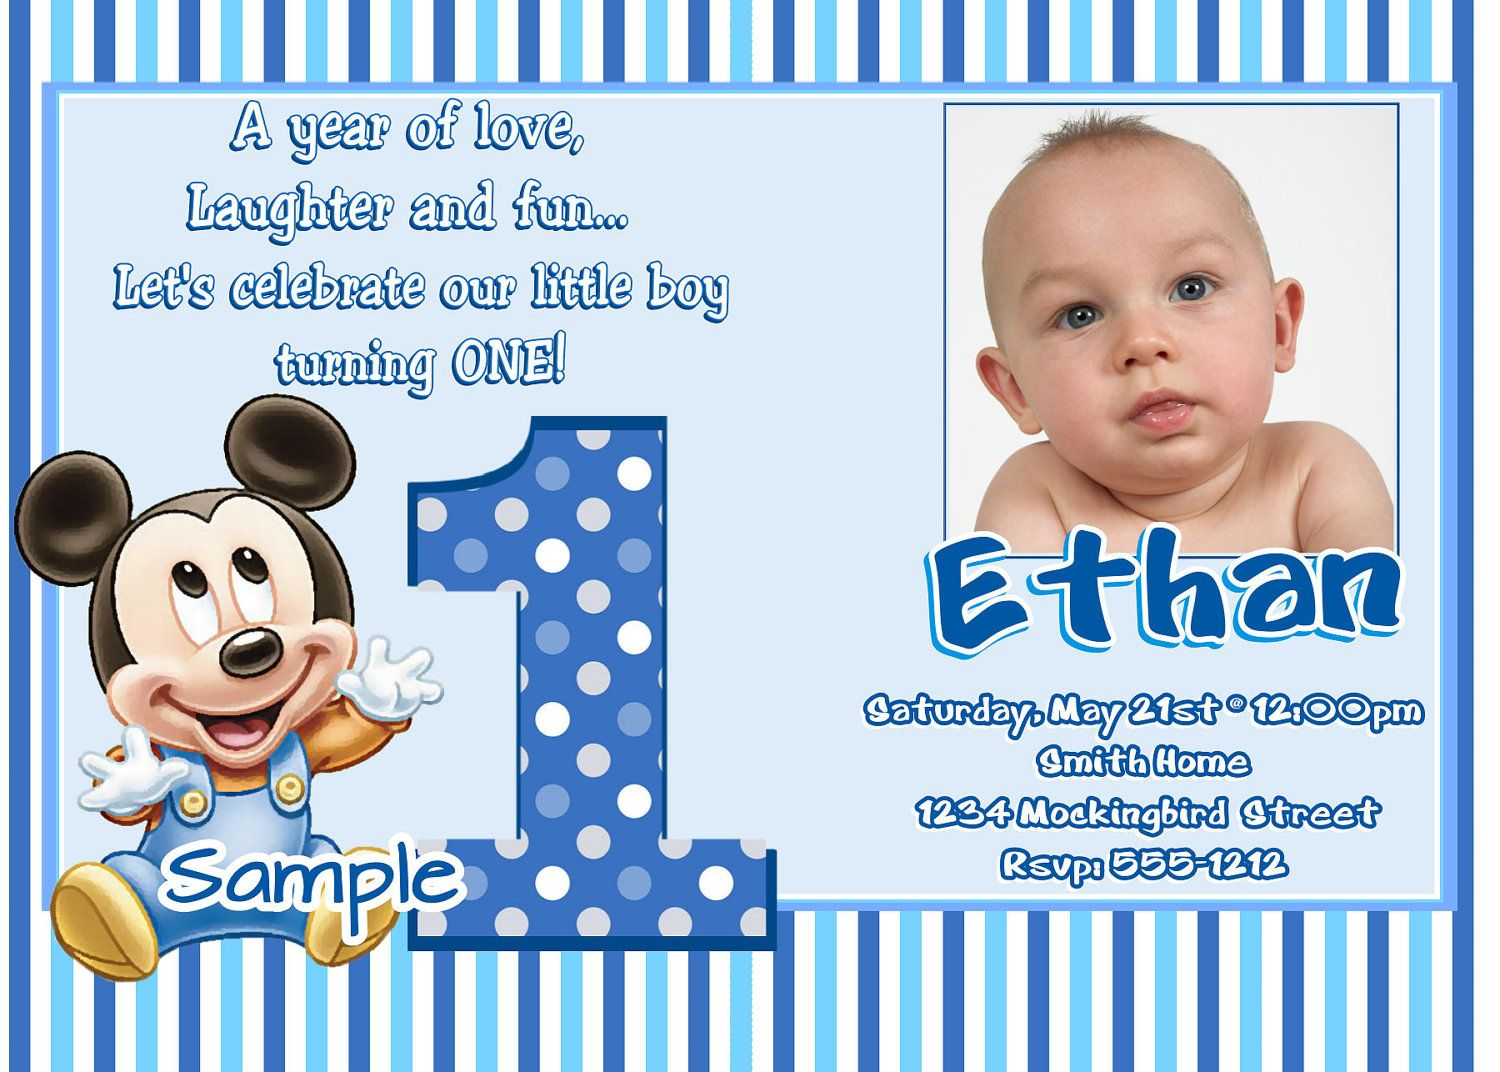 Free St Birthday Invitation Maker Invitation Sample Pinterest - Baby birthday invitation templates